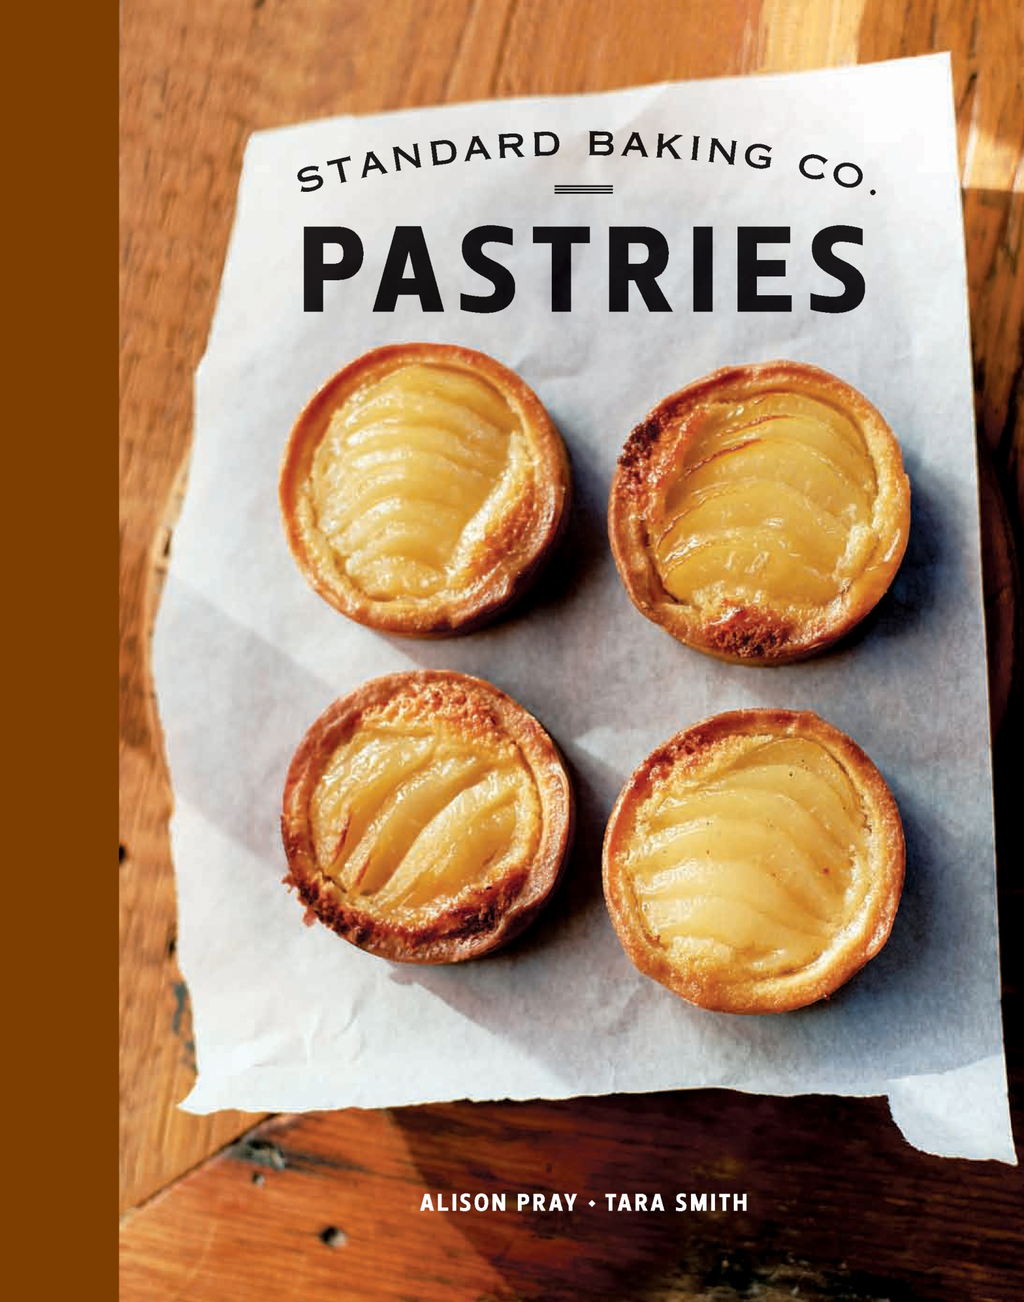 Standard Baking Co. Pastries By: Alison Pray,Tara Smith